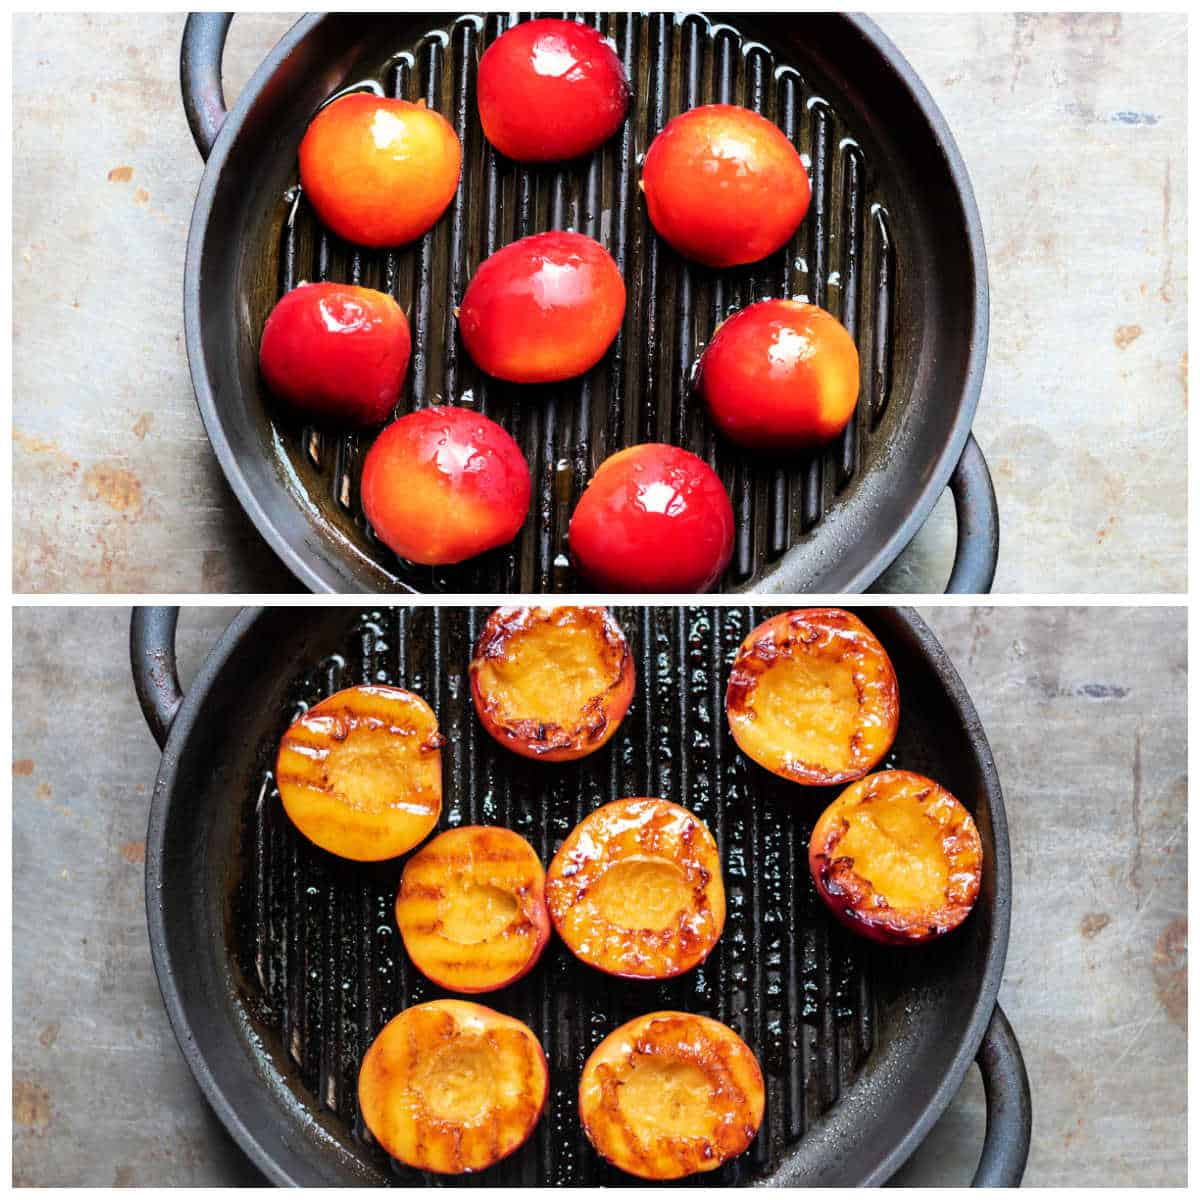 Nectarines being cooked on a grill pan.